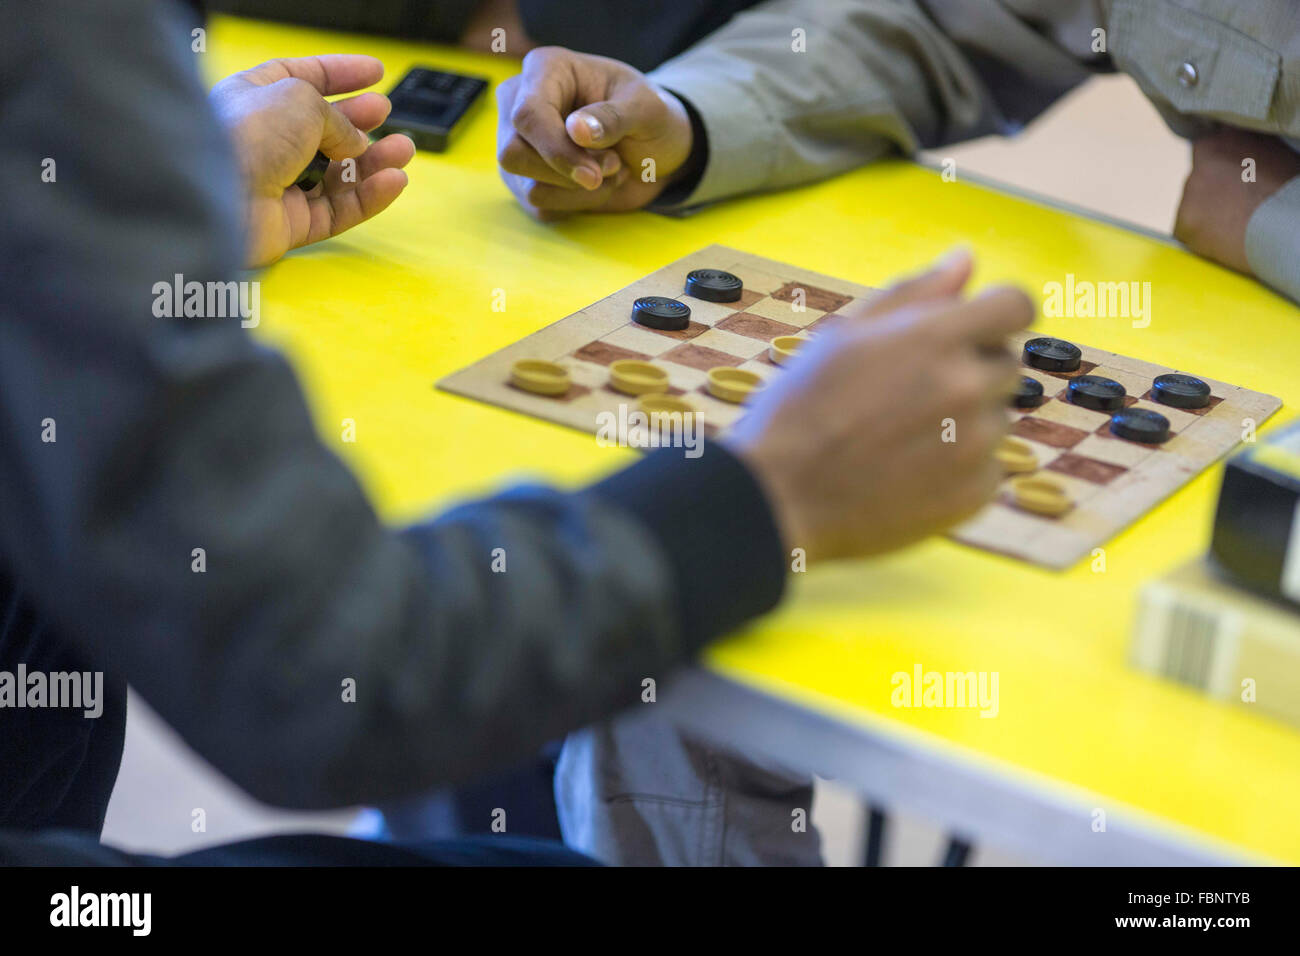 Two unidentifiable men play a game of draughts (US - checkers) at a community centre  Photo credit : Chris Bull - Stock Image